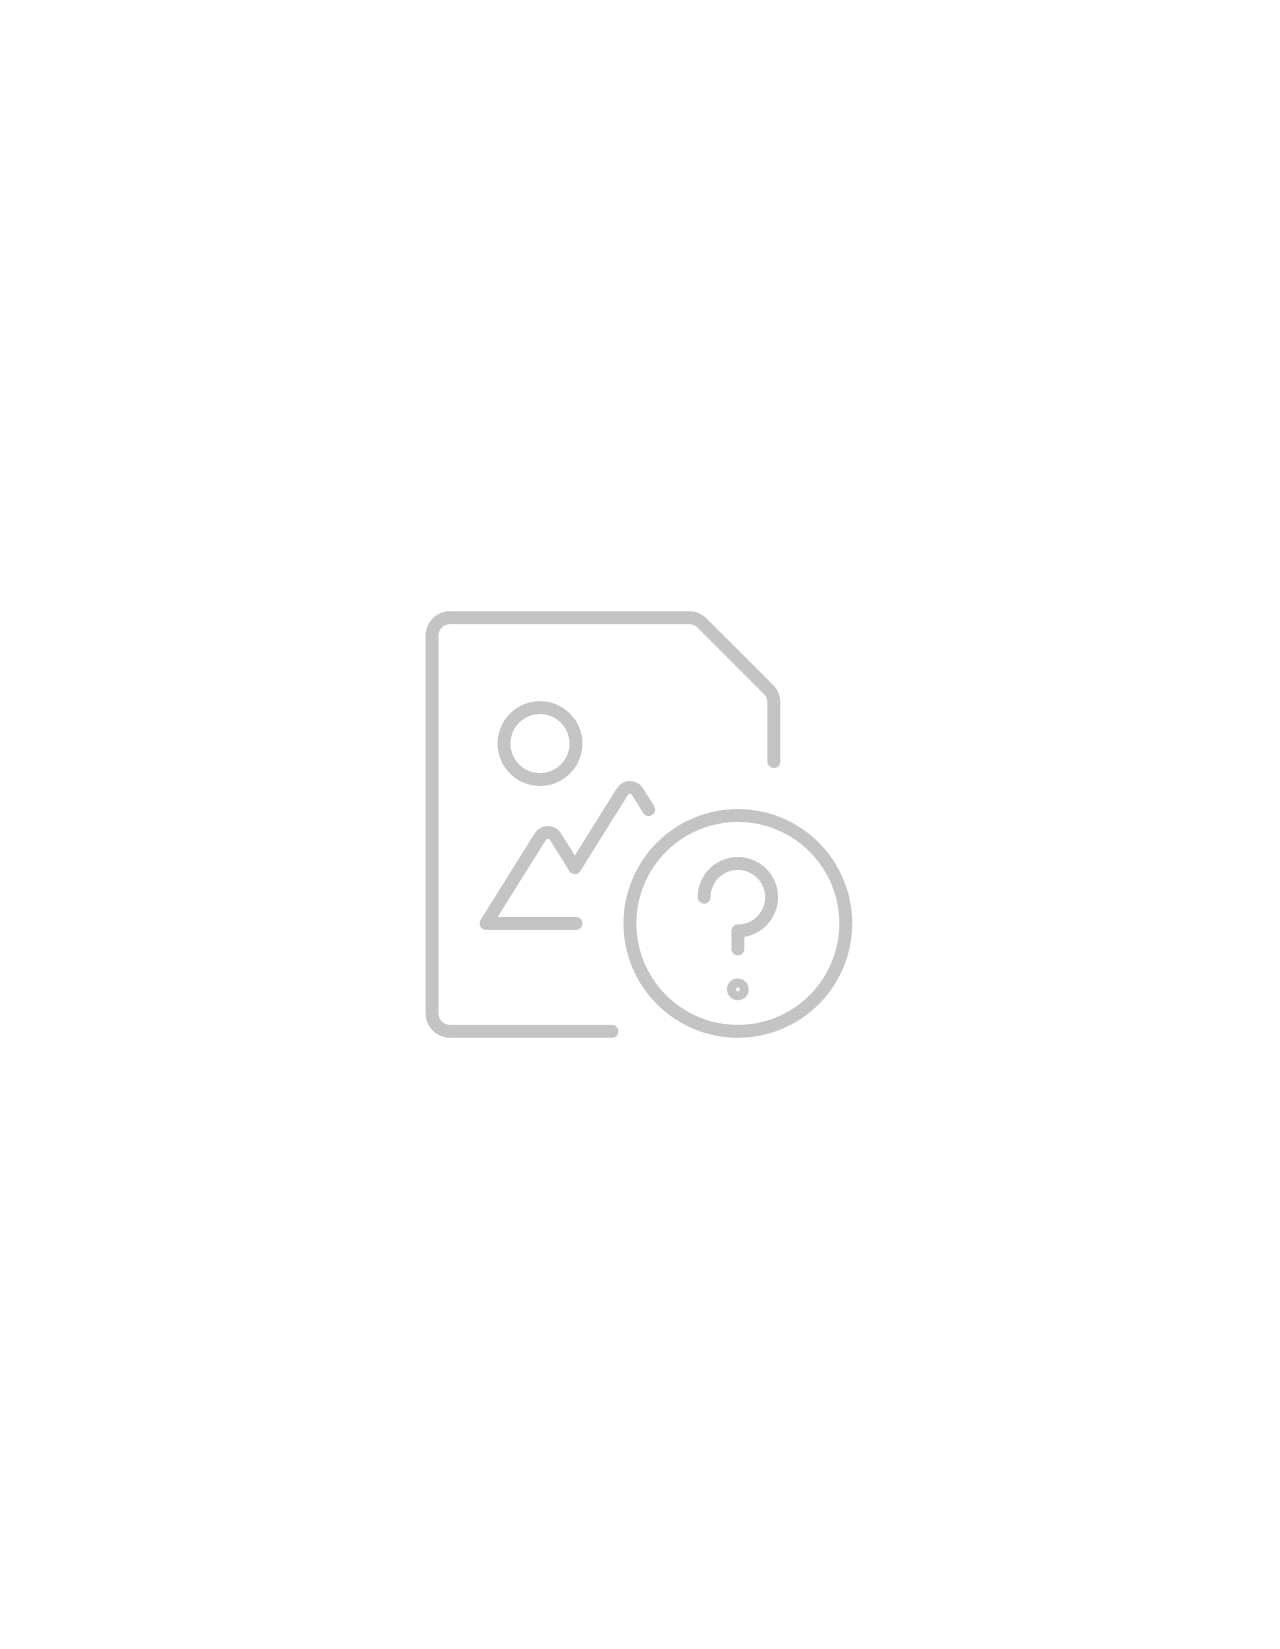 Courier, November 10, 1809, Page 2